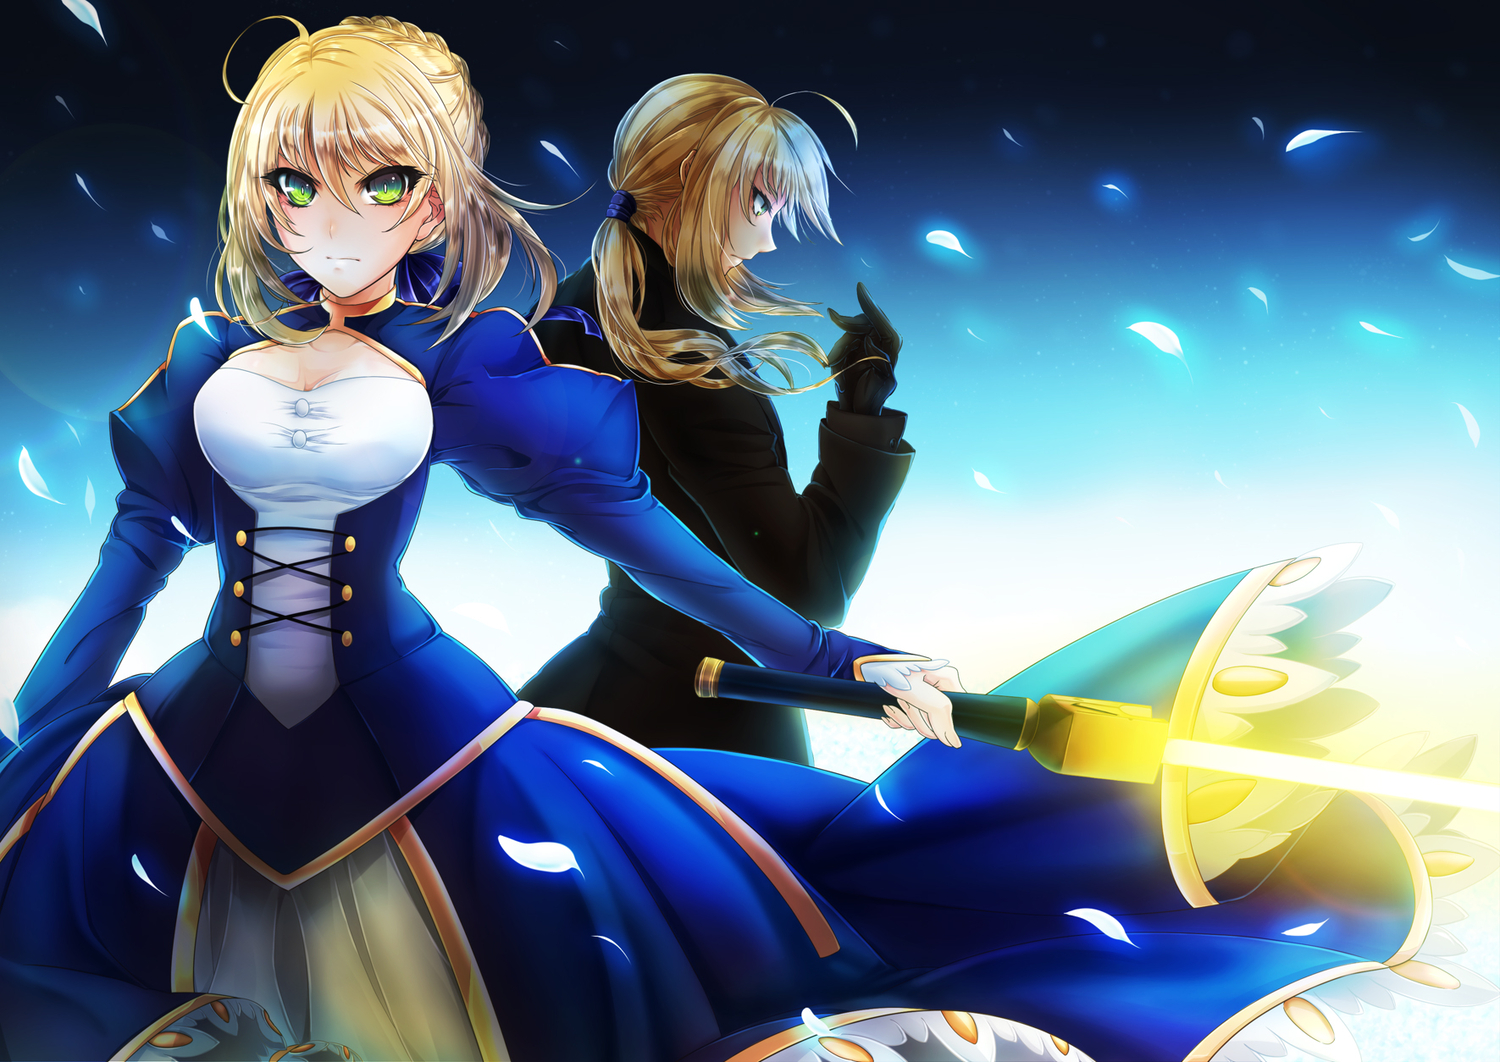 fate/stay_night fate/zero saber